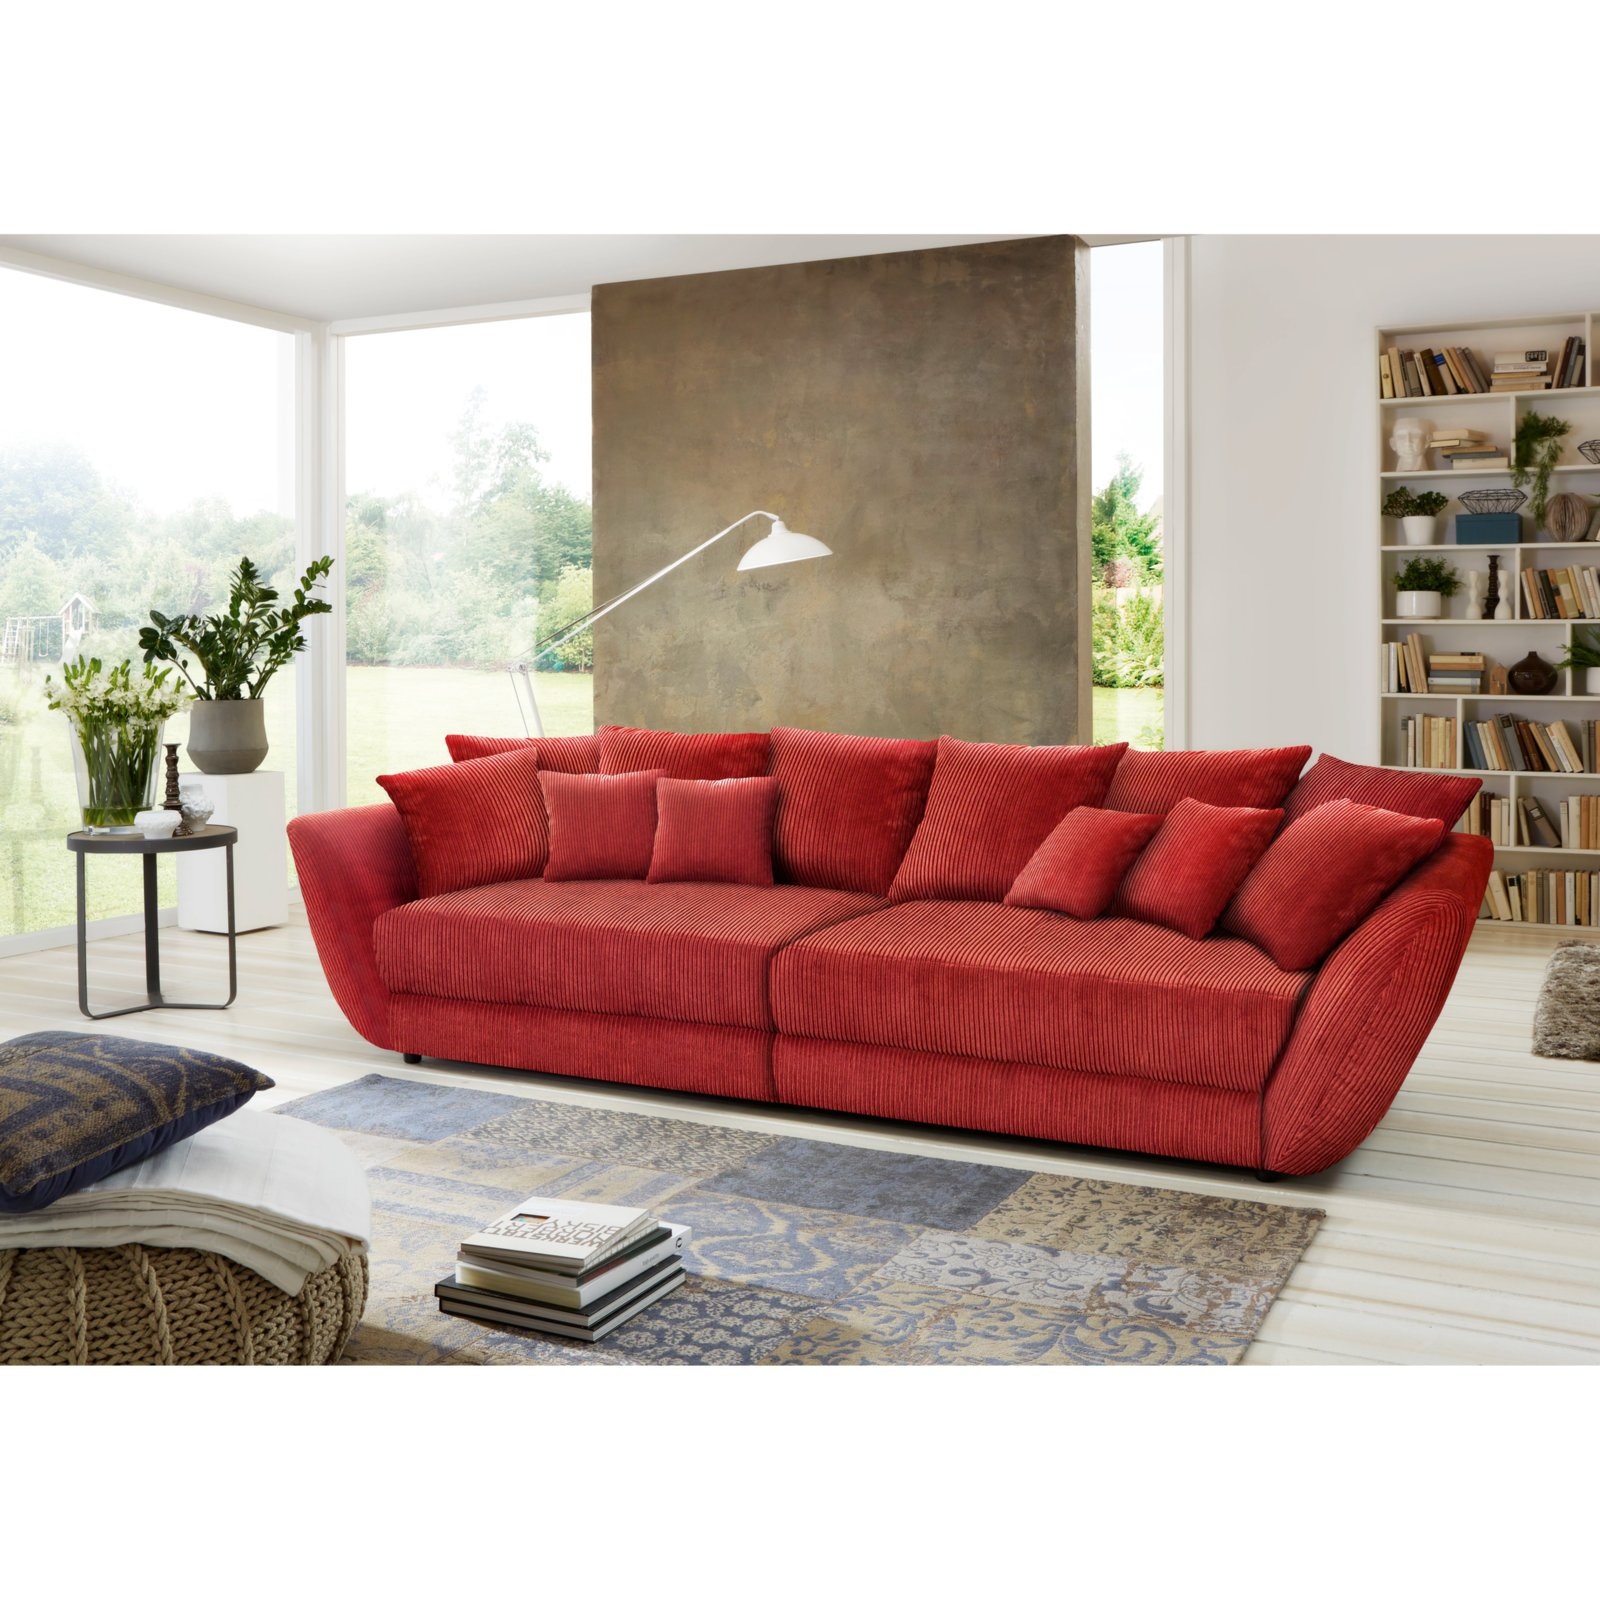 Big Sofa Federkern. Perfect Big Sofa Home Affaire Polsterecke Norra ...